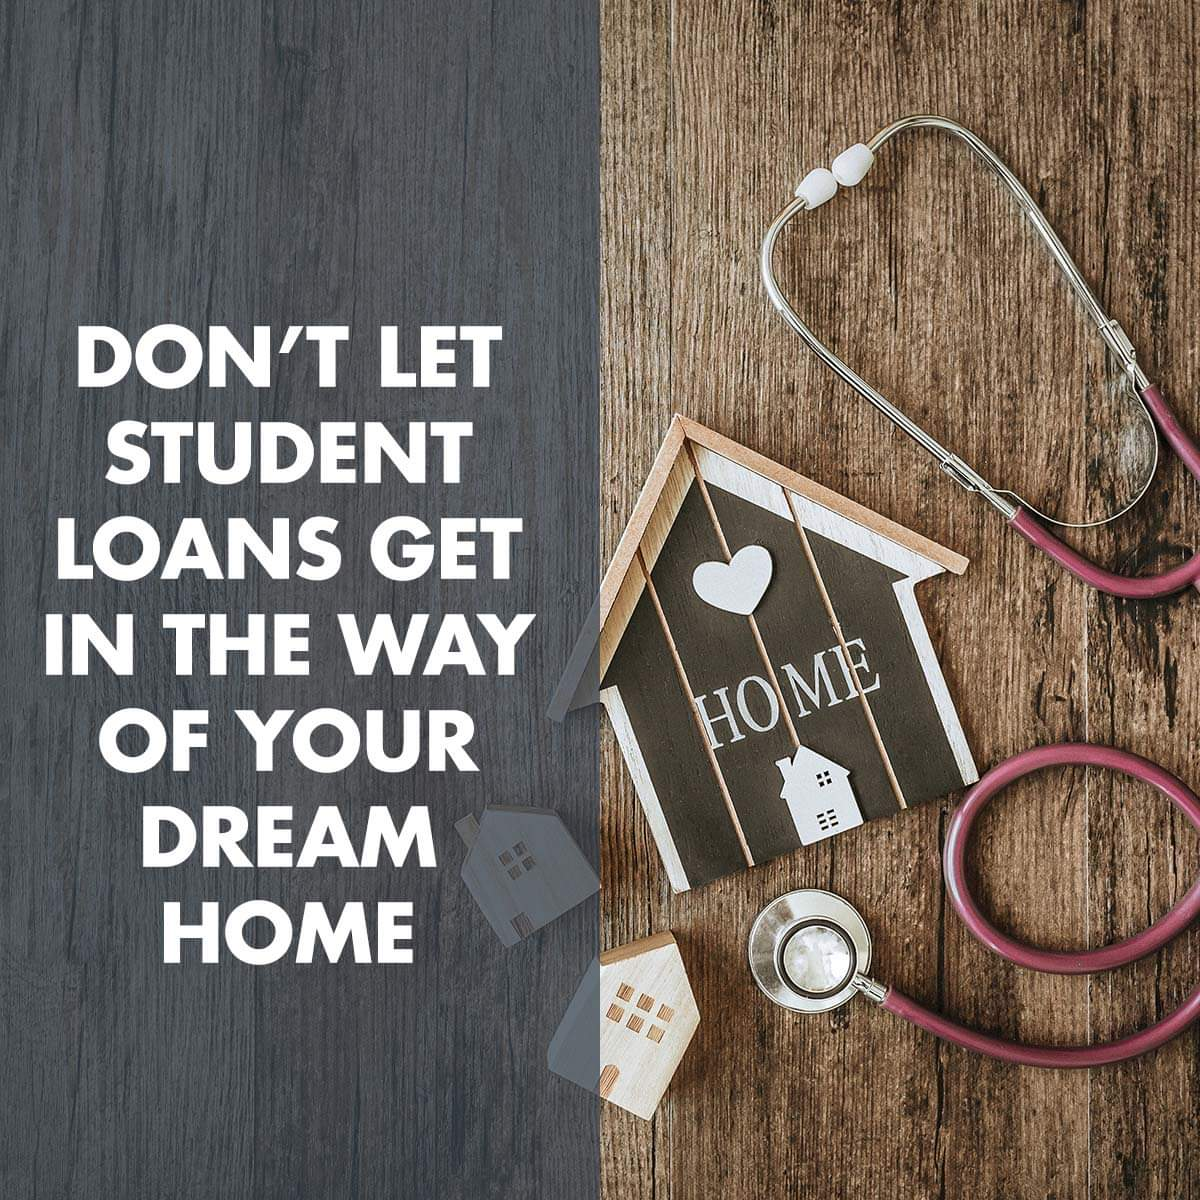 Still owing money on student loans will not cancel  your home ownership dreams!  Call us and we can help.  #TheMohsinProgram  800-662-9550<br>http://pic.twitter.com/2XwQIxEnPx